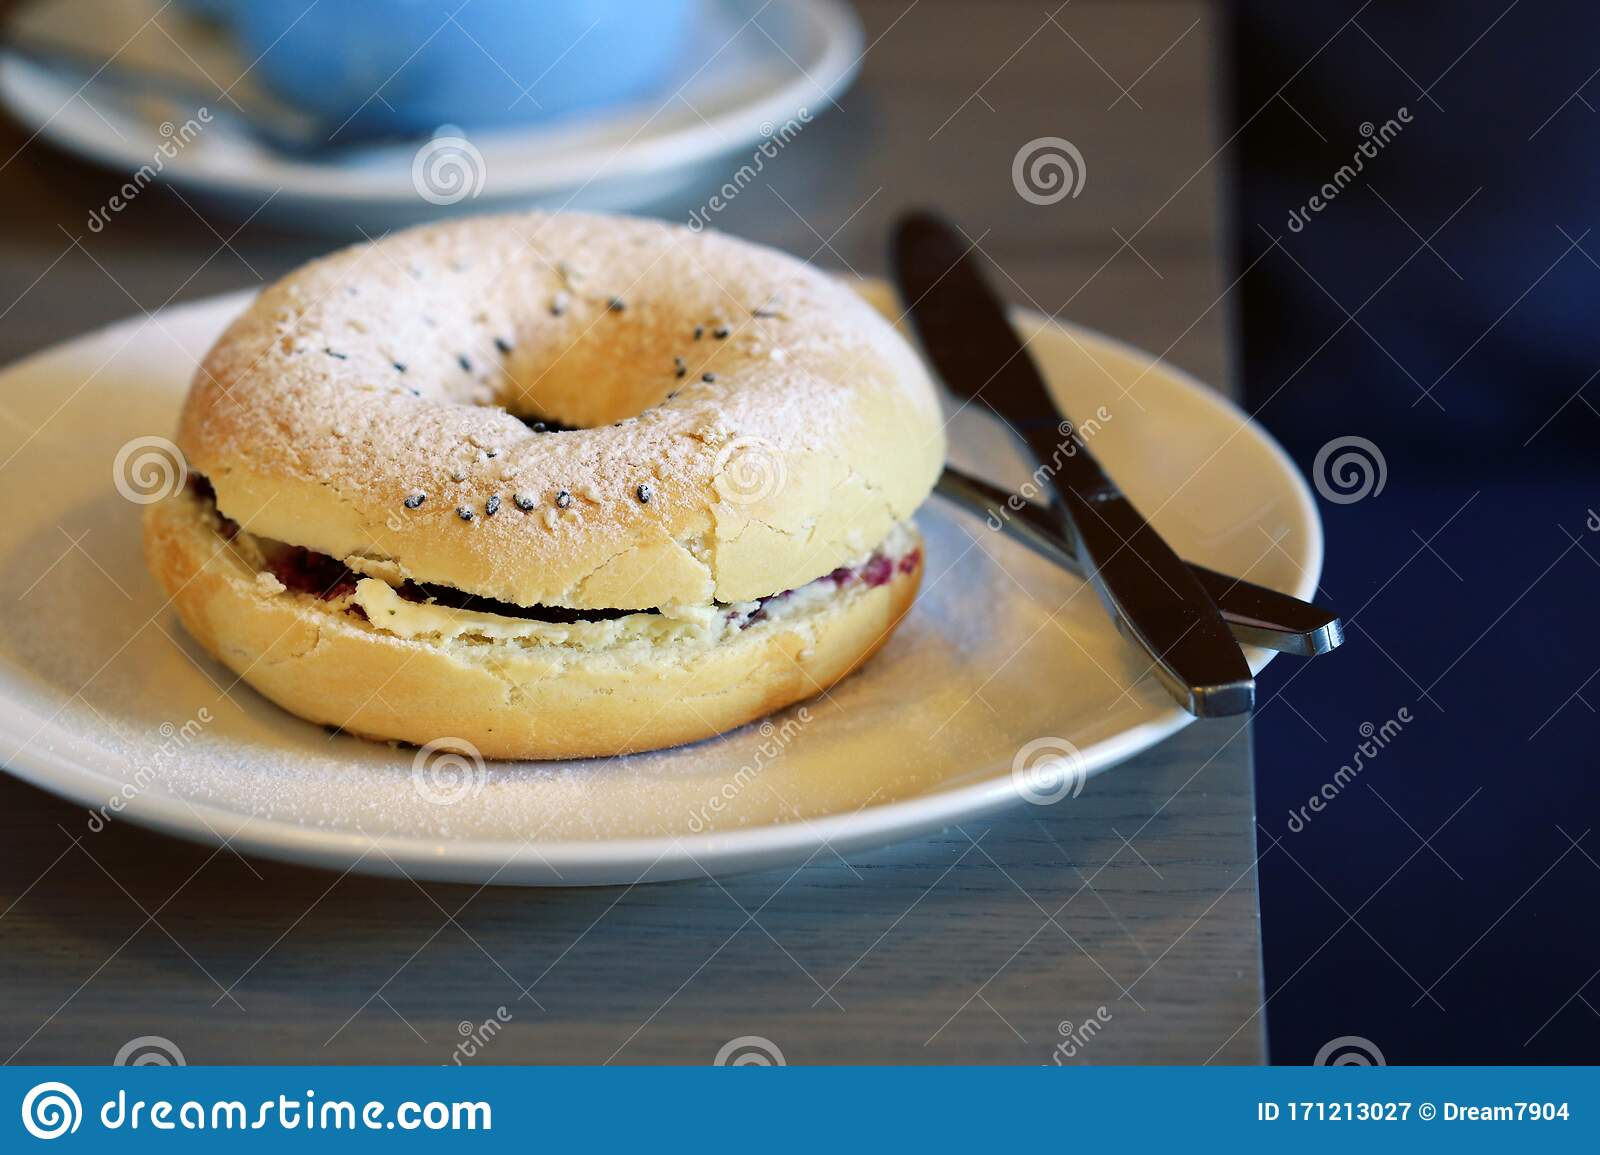 Breakfast Bagel With Toppings Stock Image Image Of Nutrition Freshness 171213027